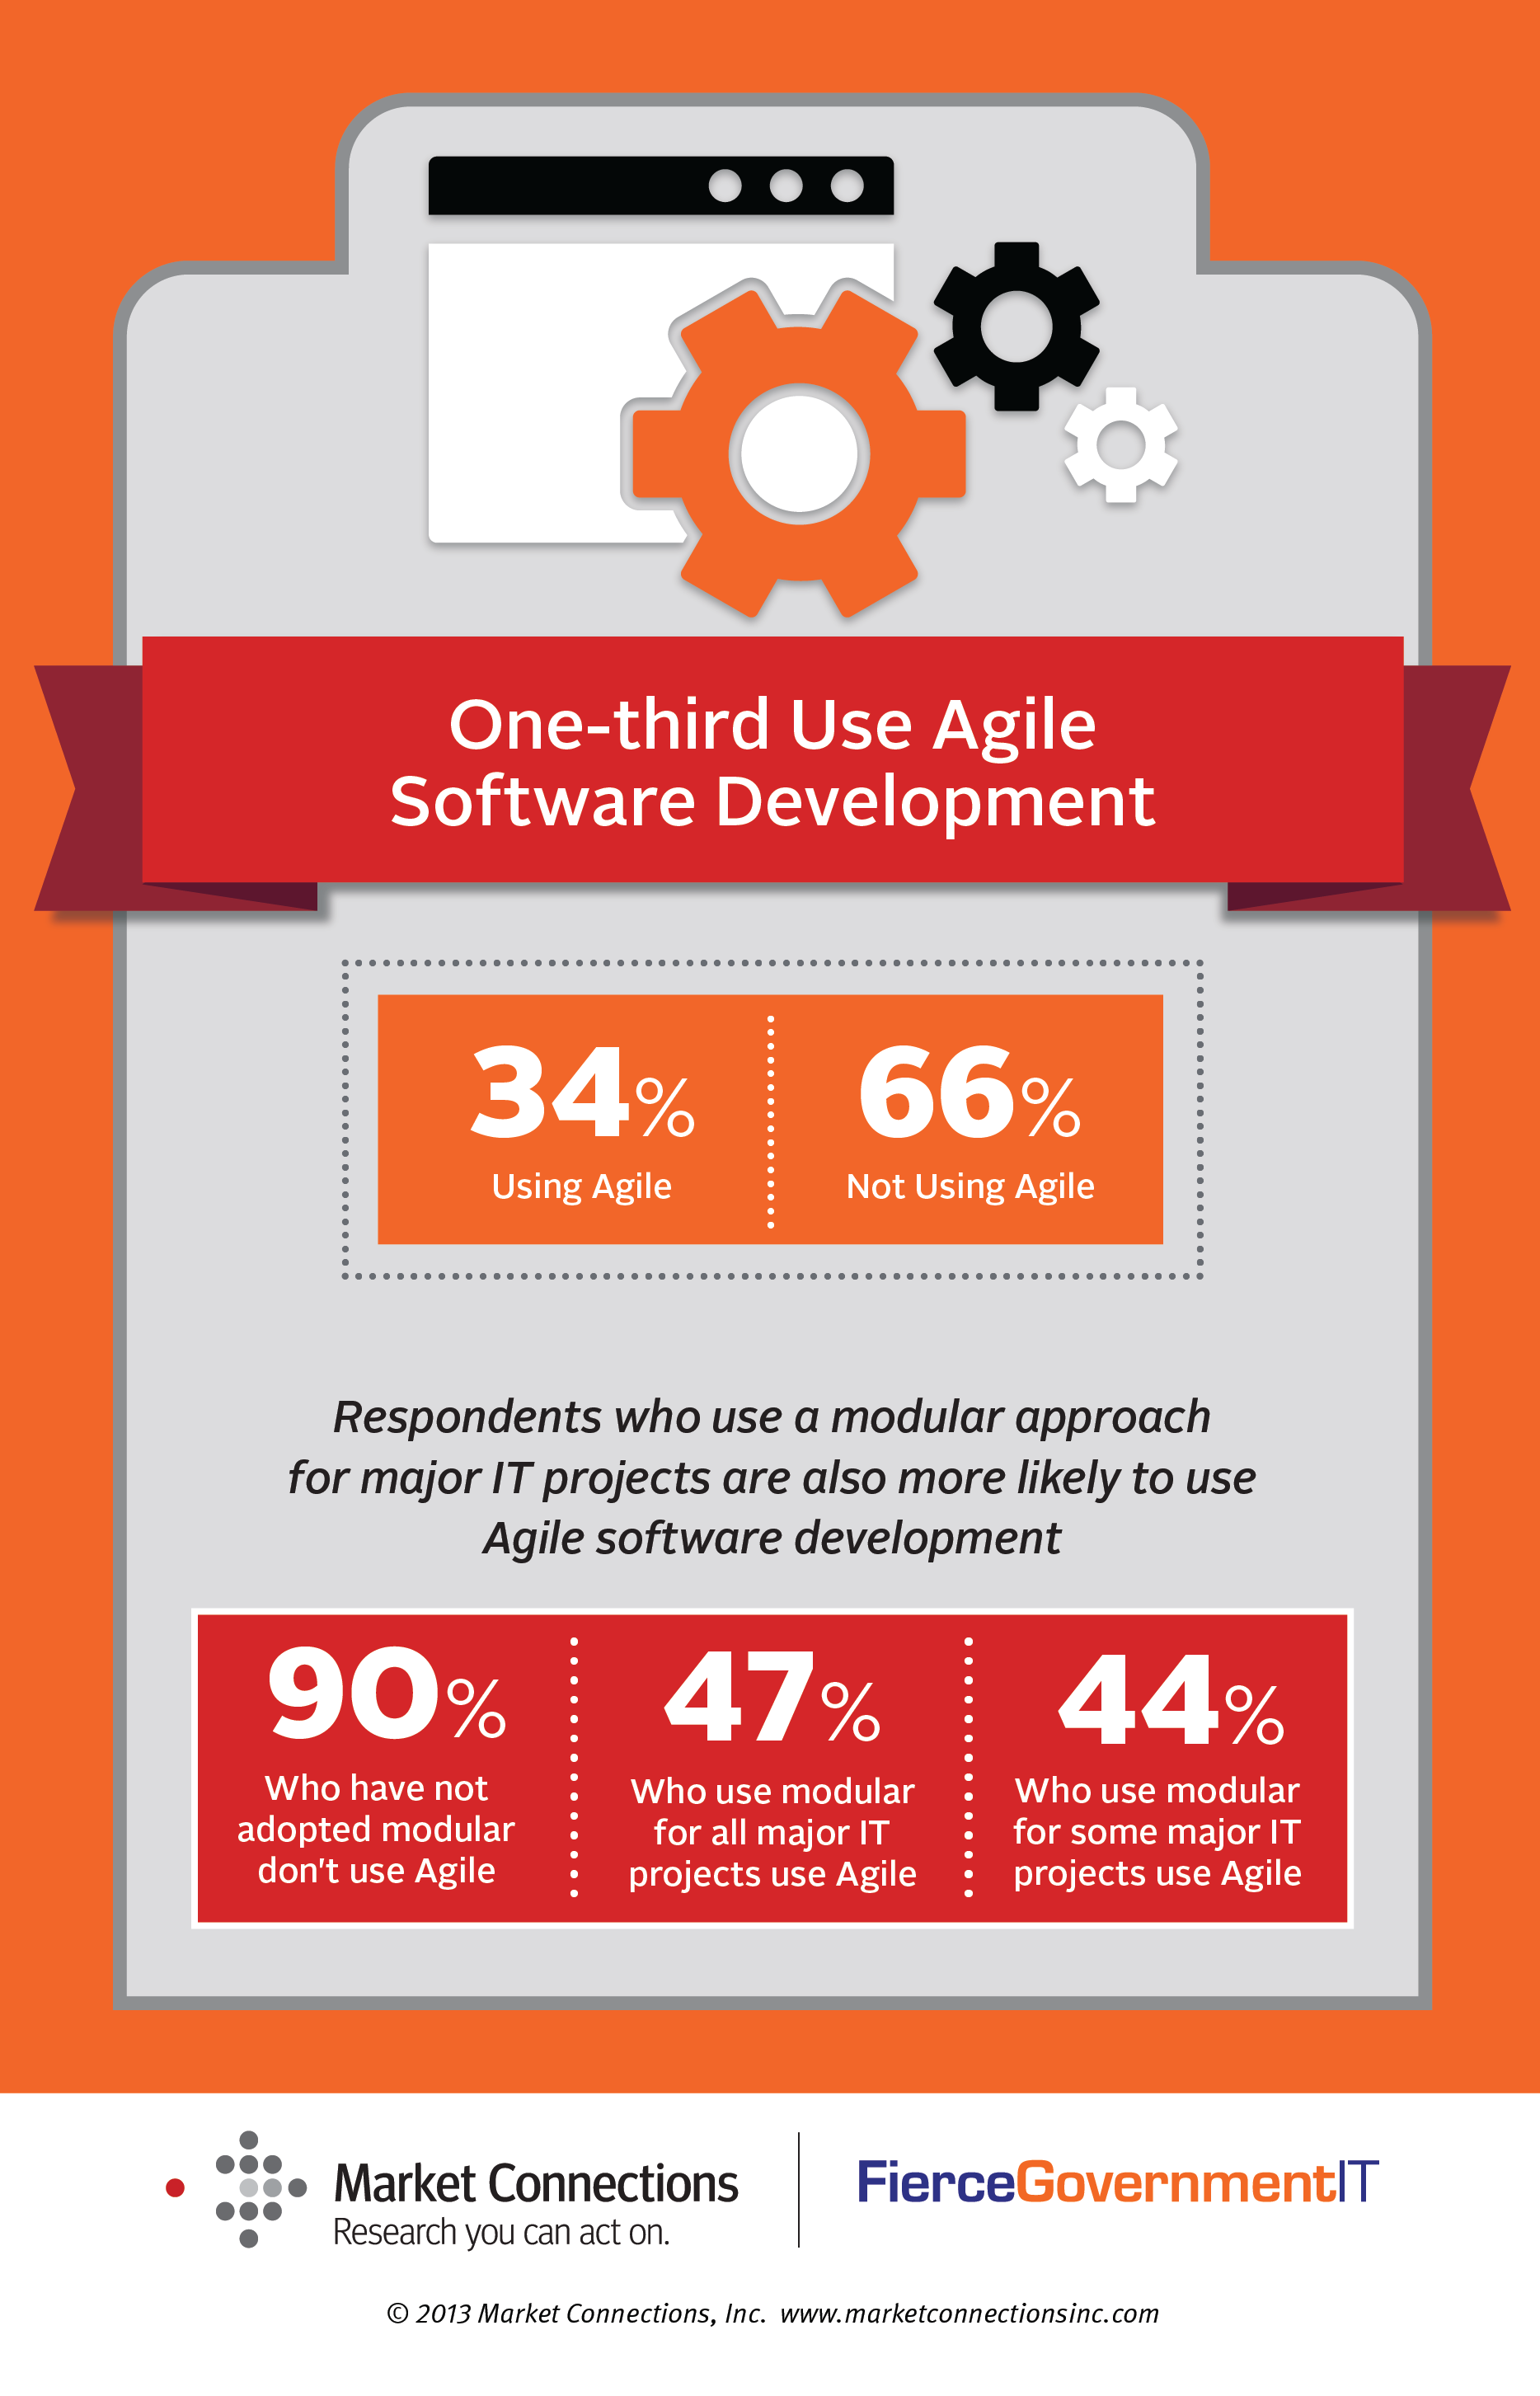 Infographic-One-third Use Agile Software Development